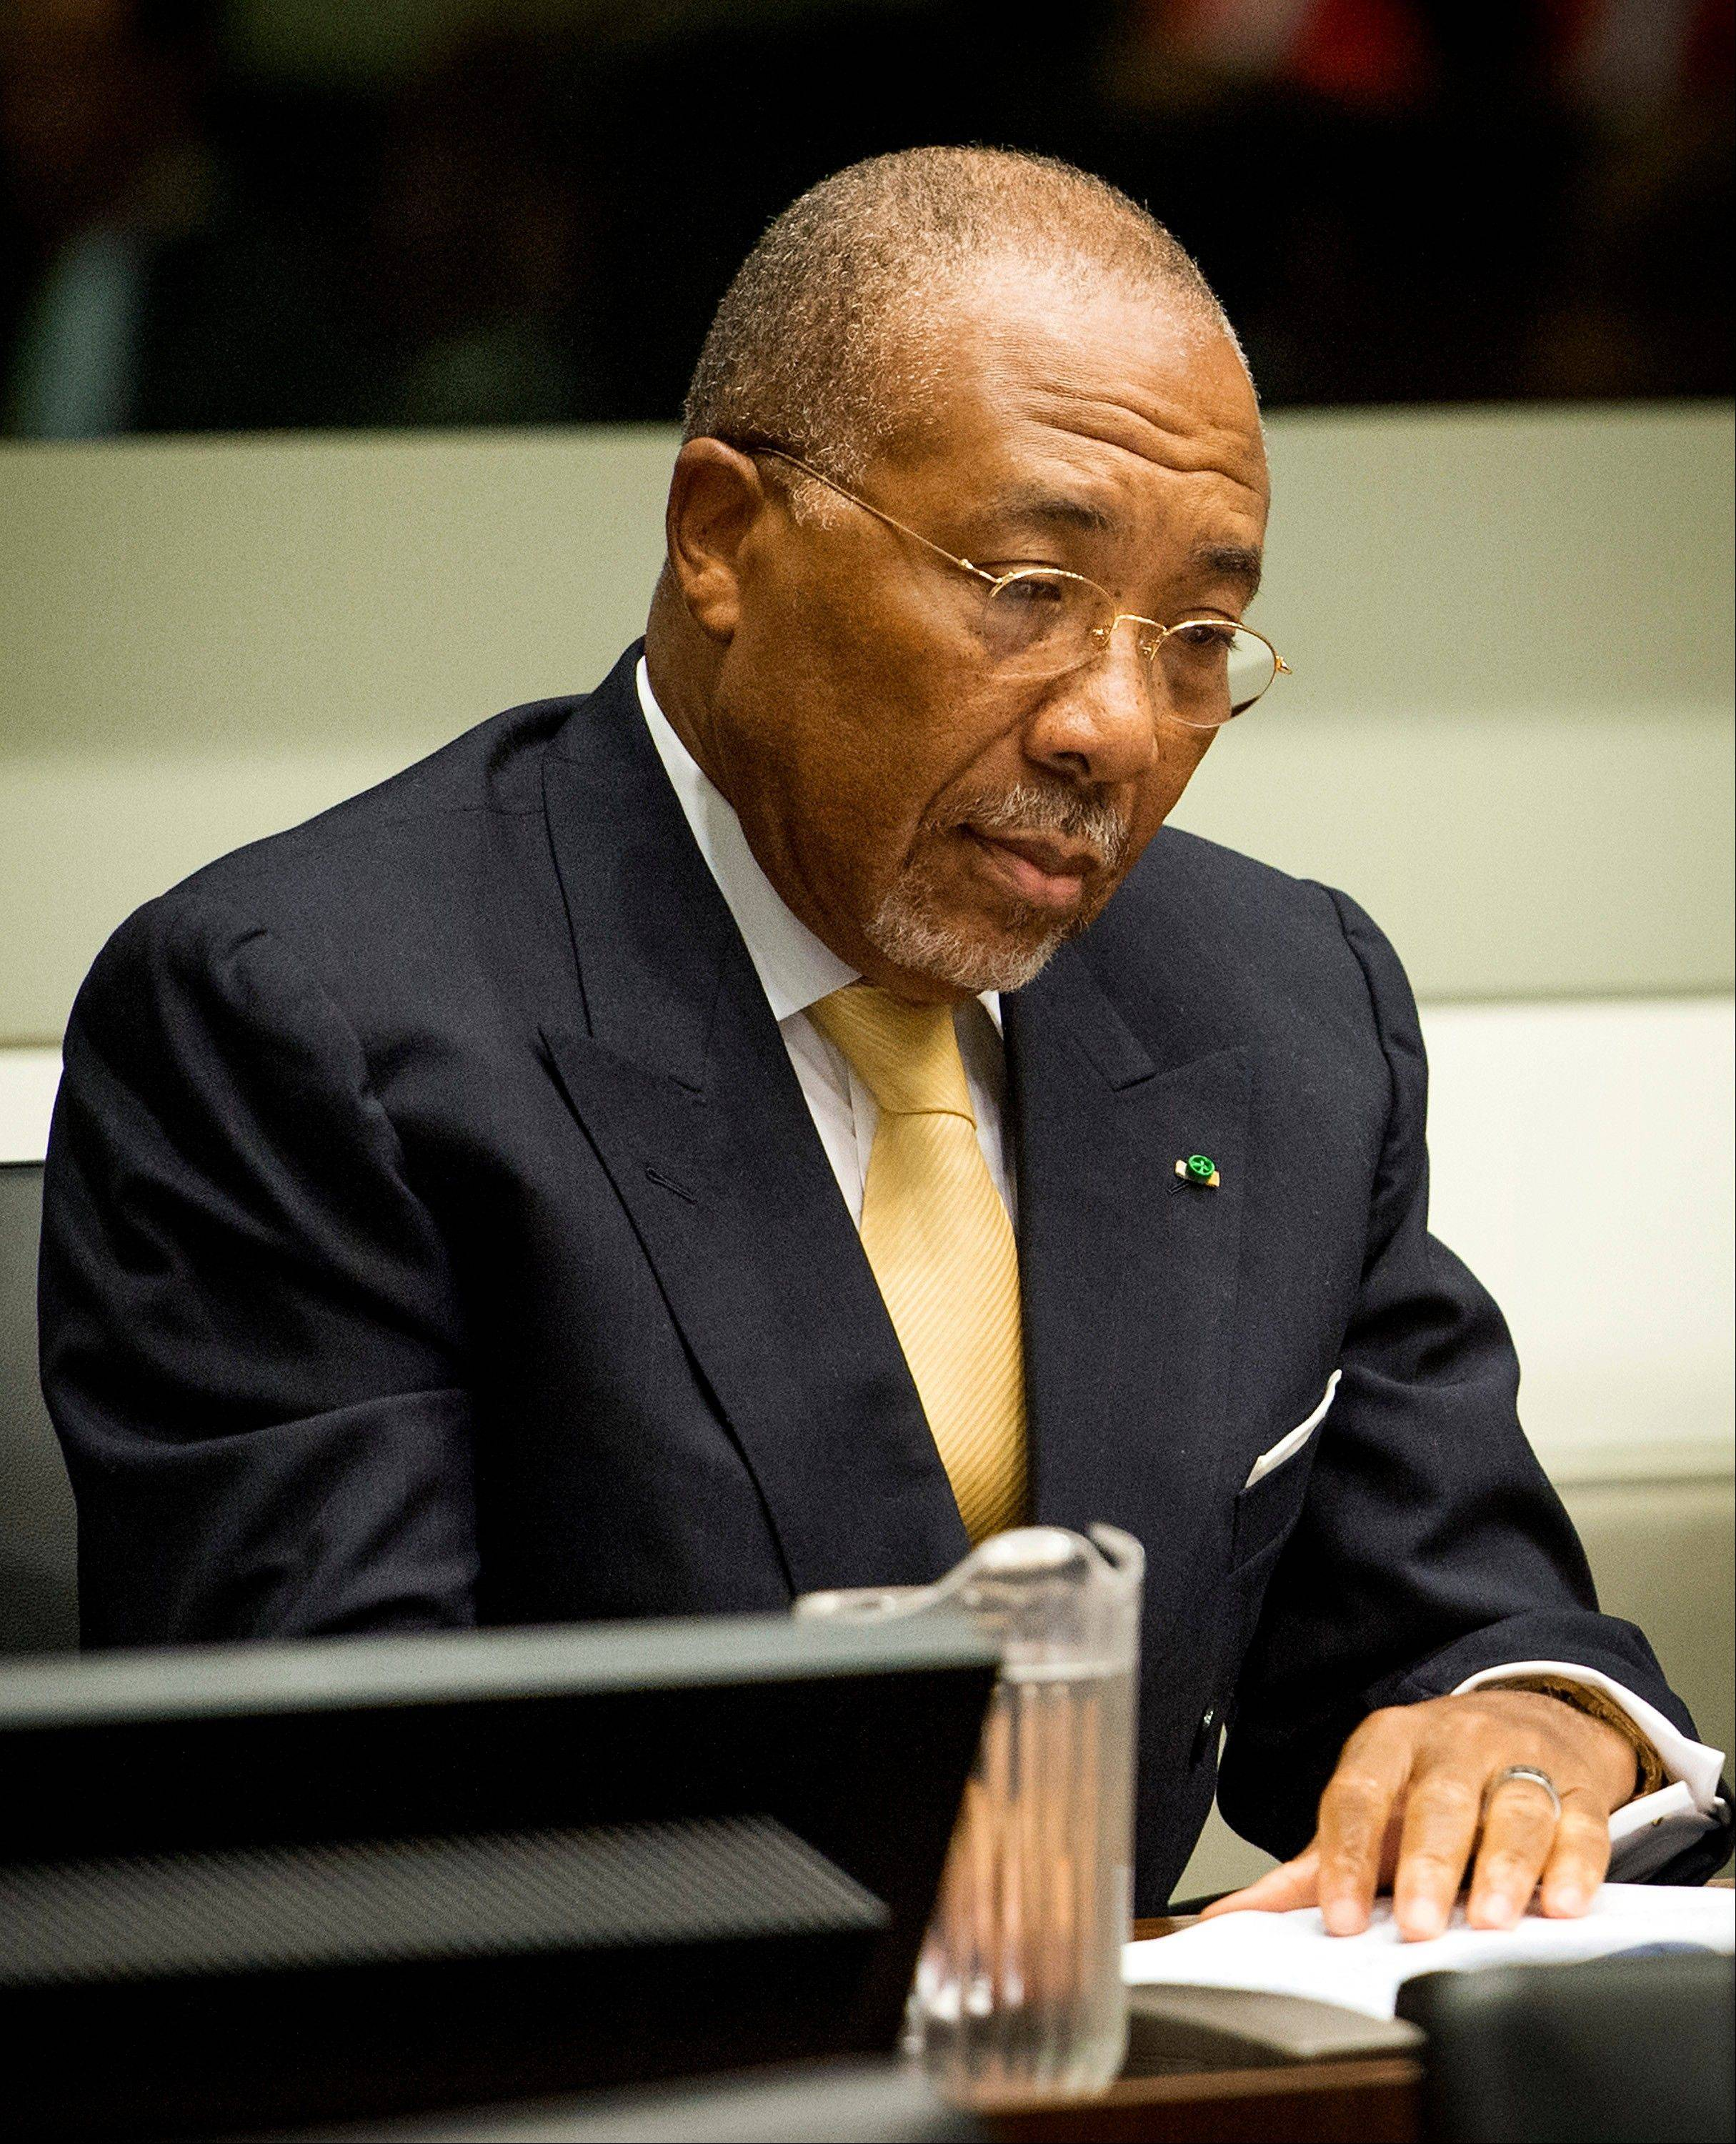 An international war crimes court upheld the conviction and 50-year sentence of former Liberian President Charles Taylor for aiding rebels in Sierra Leone, ruling Thursday that his financial, material and tactical support fueled horrendous crimes against civilians.